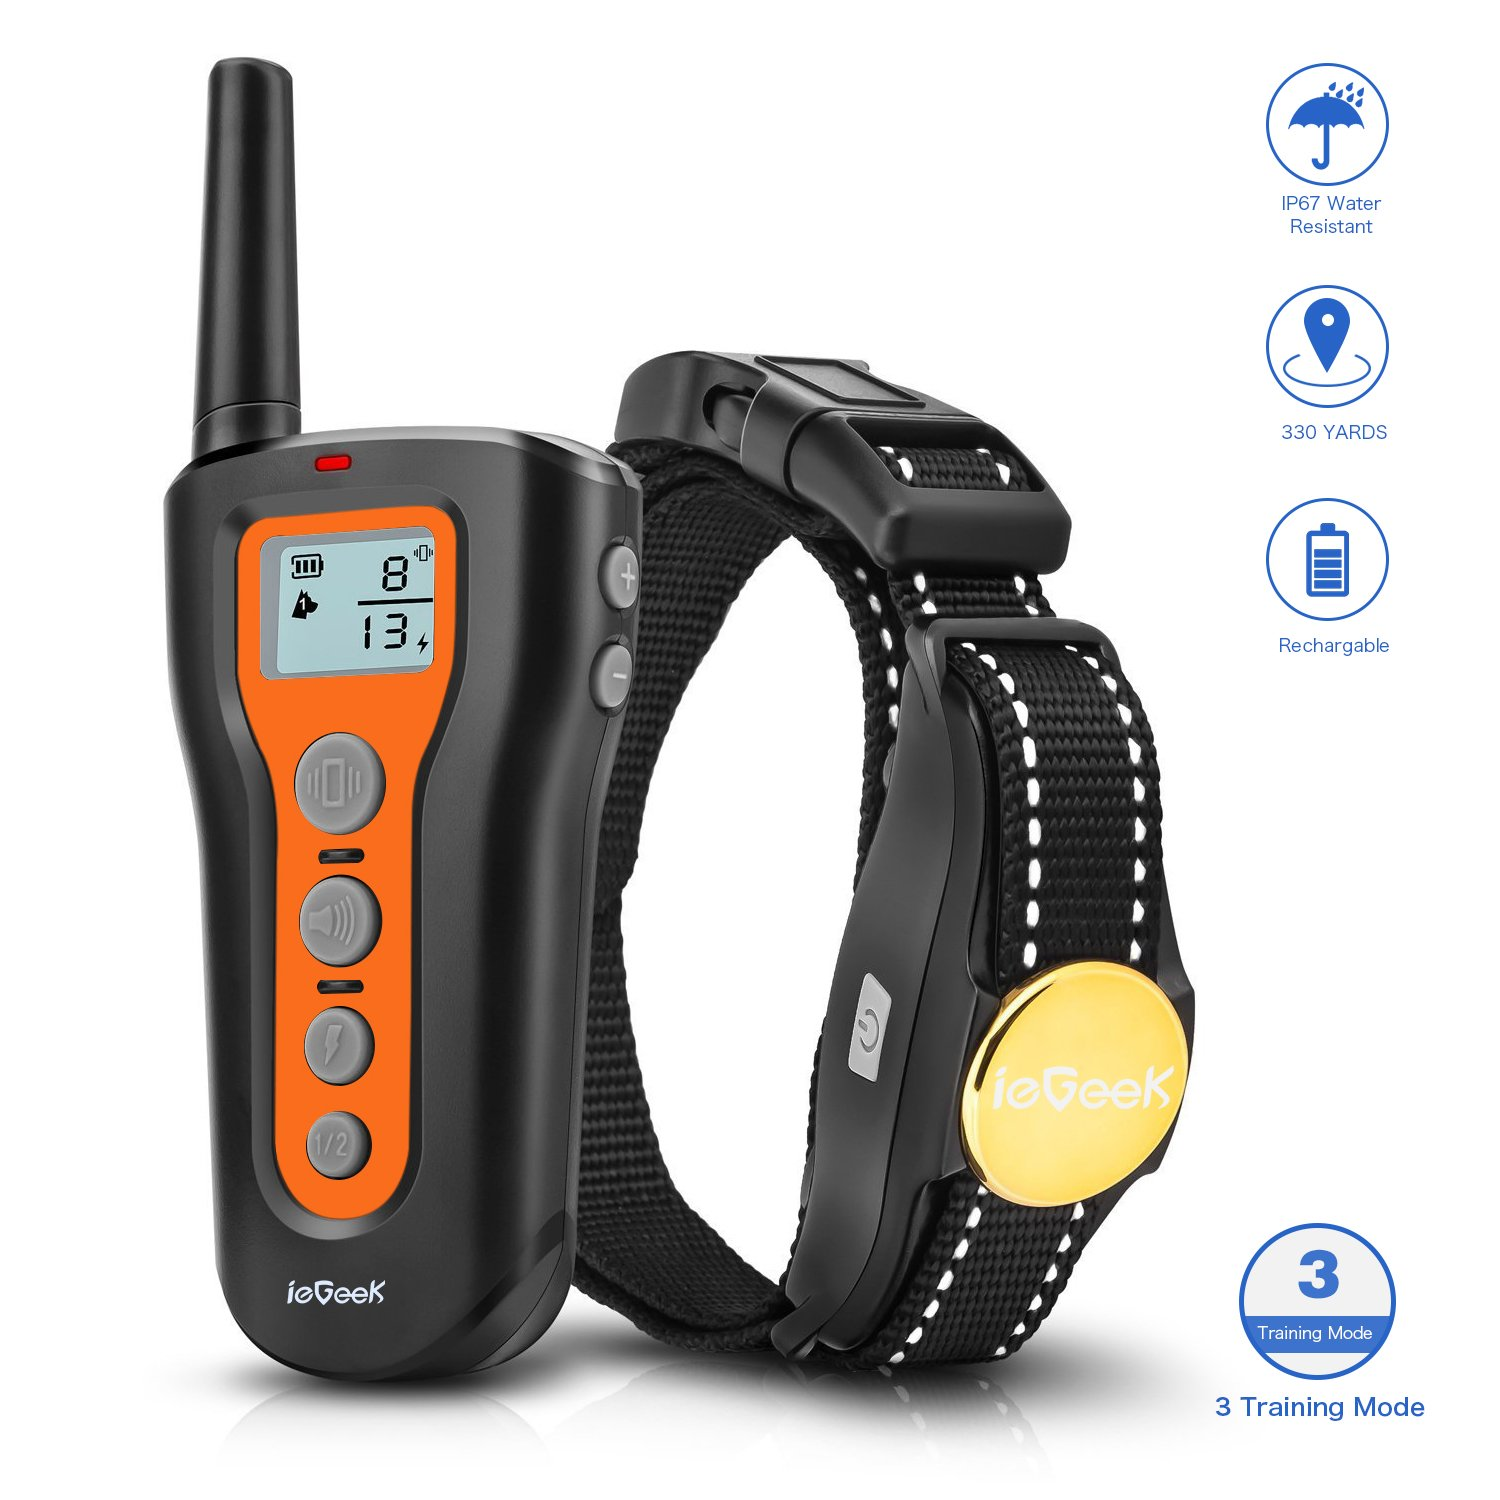 IeGeek Dog Training Collar with Remote Control, Rechargeable and Waterproof 330 Yards Electric Dog Shock Collar with Beep Vibration Electric Shock Modes for Small Medium Large Dogs (6.6-120 lbs)